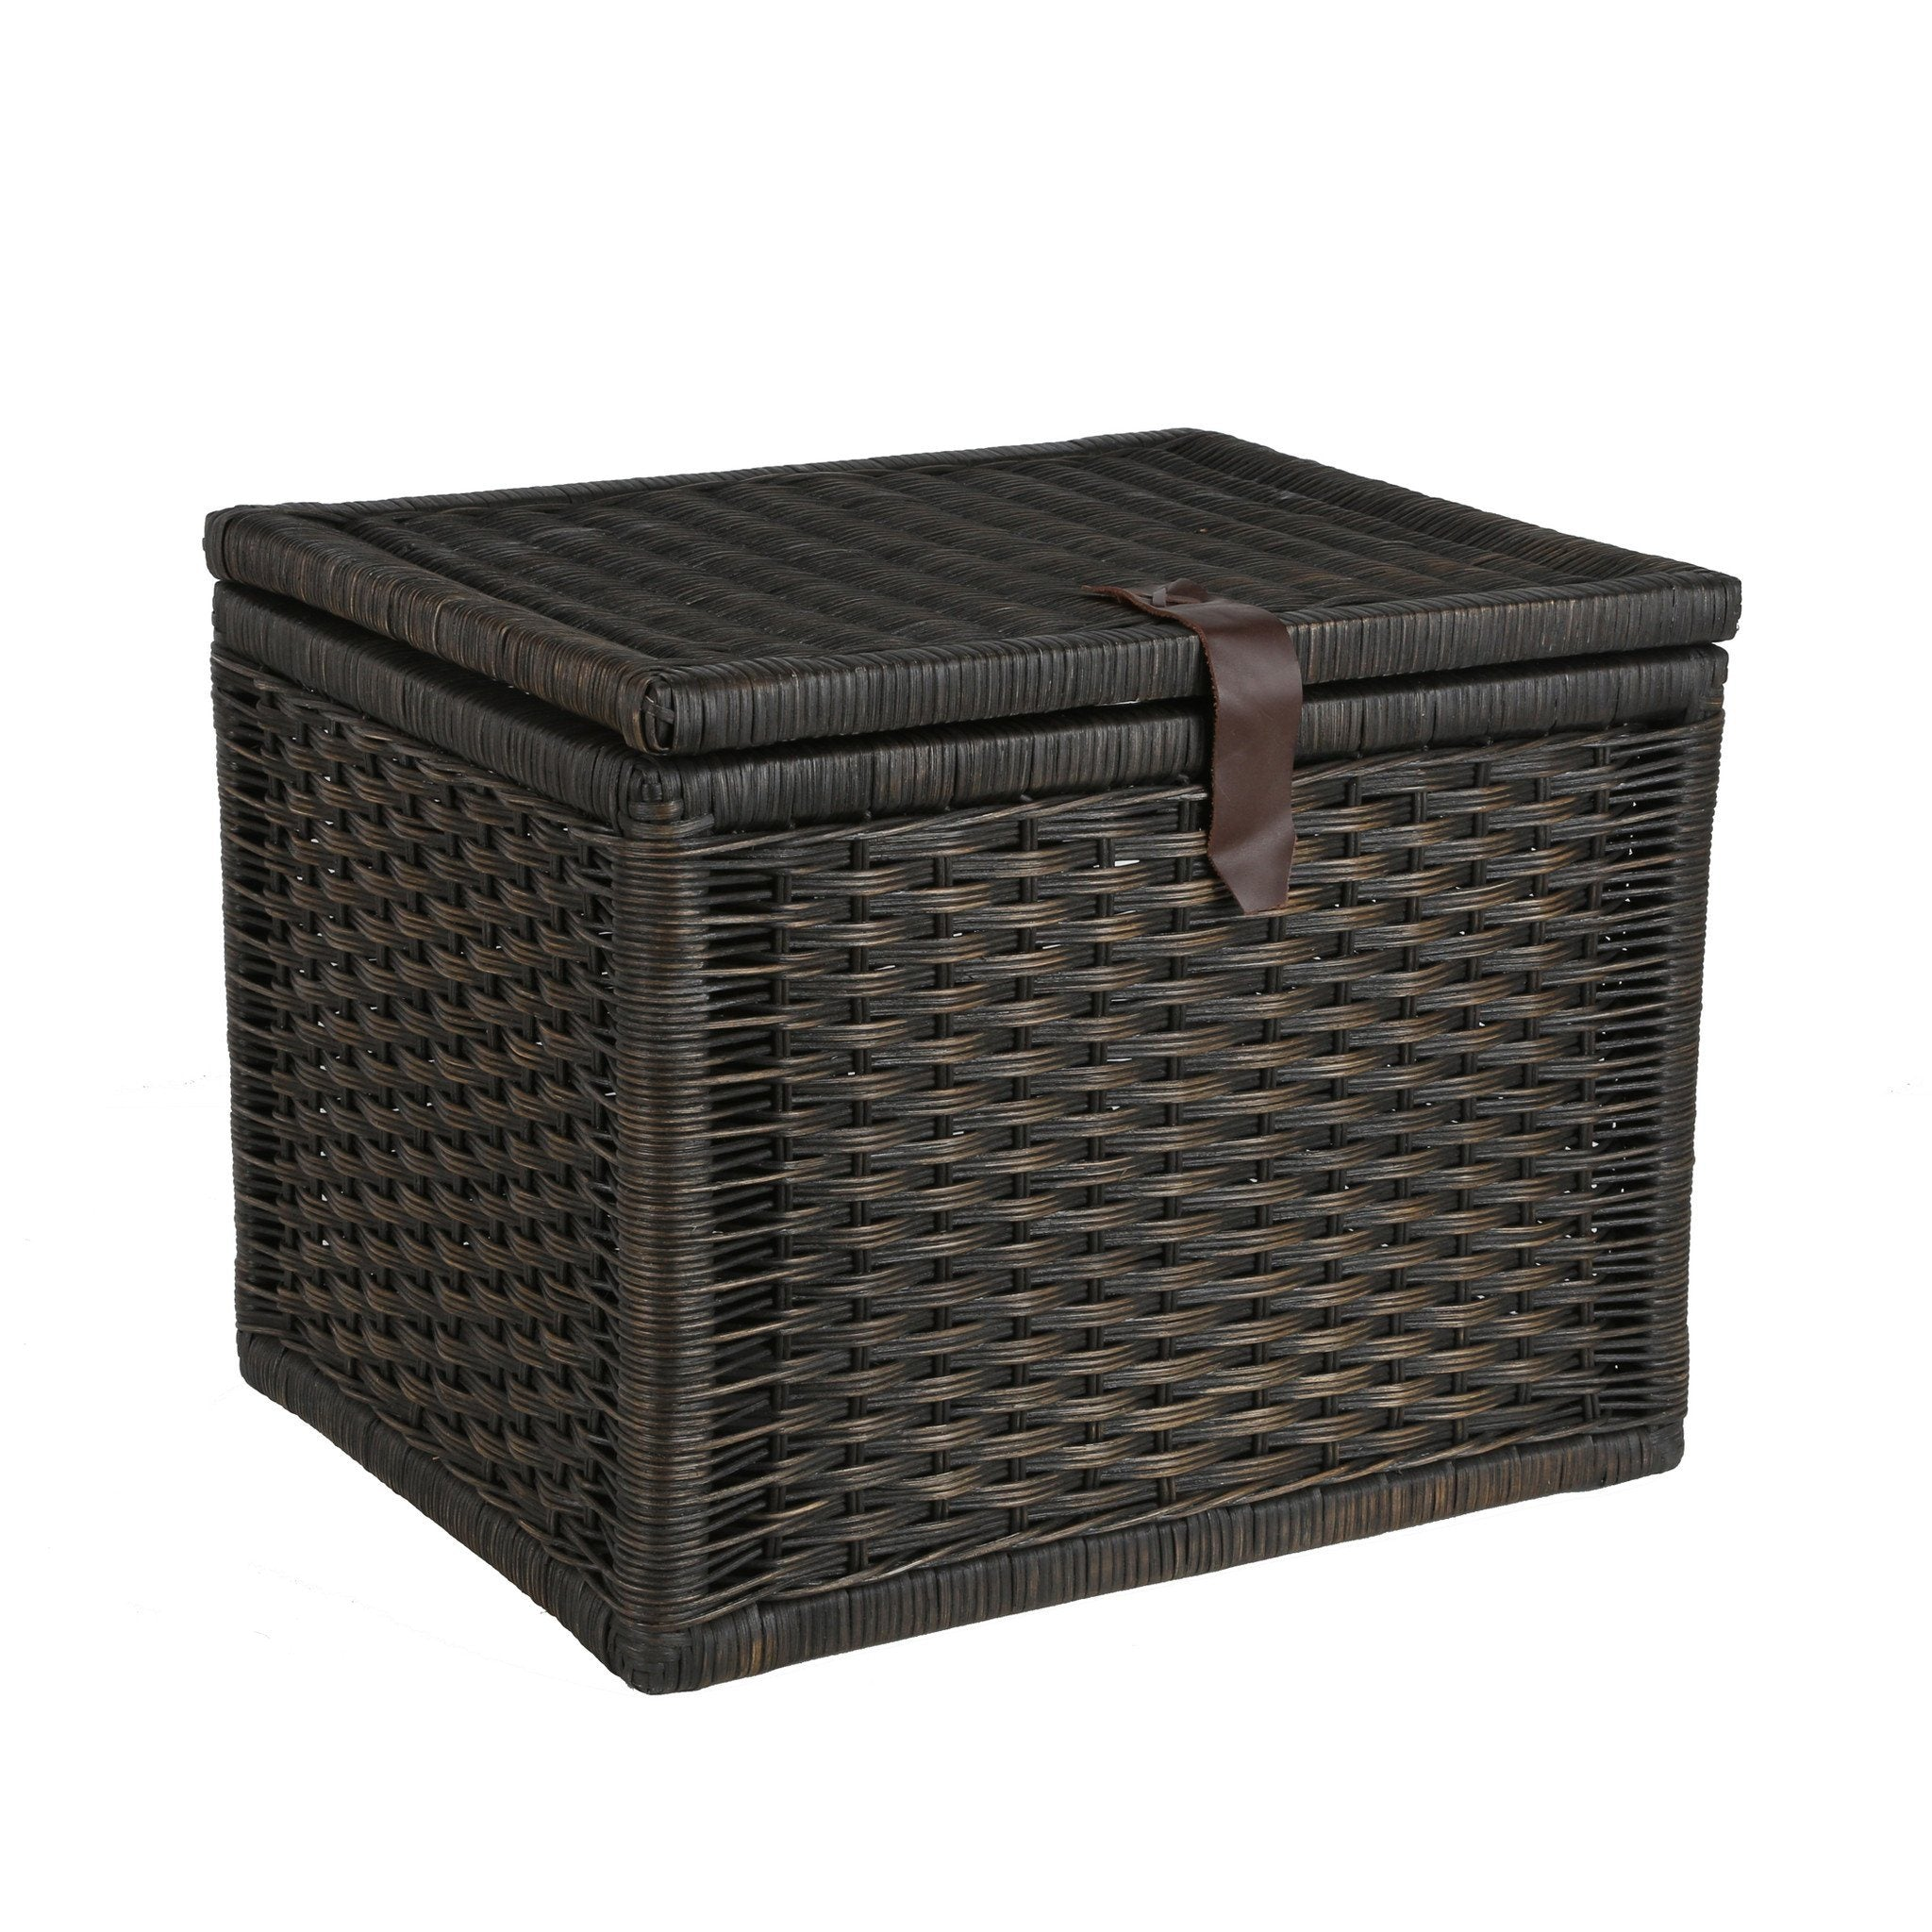 storage australia wood canada ireland uncategorized scenicative indian trunks furniture home decorative decor